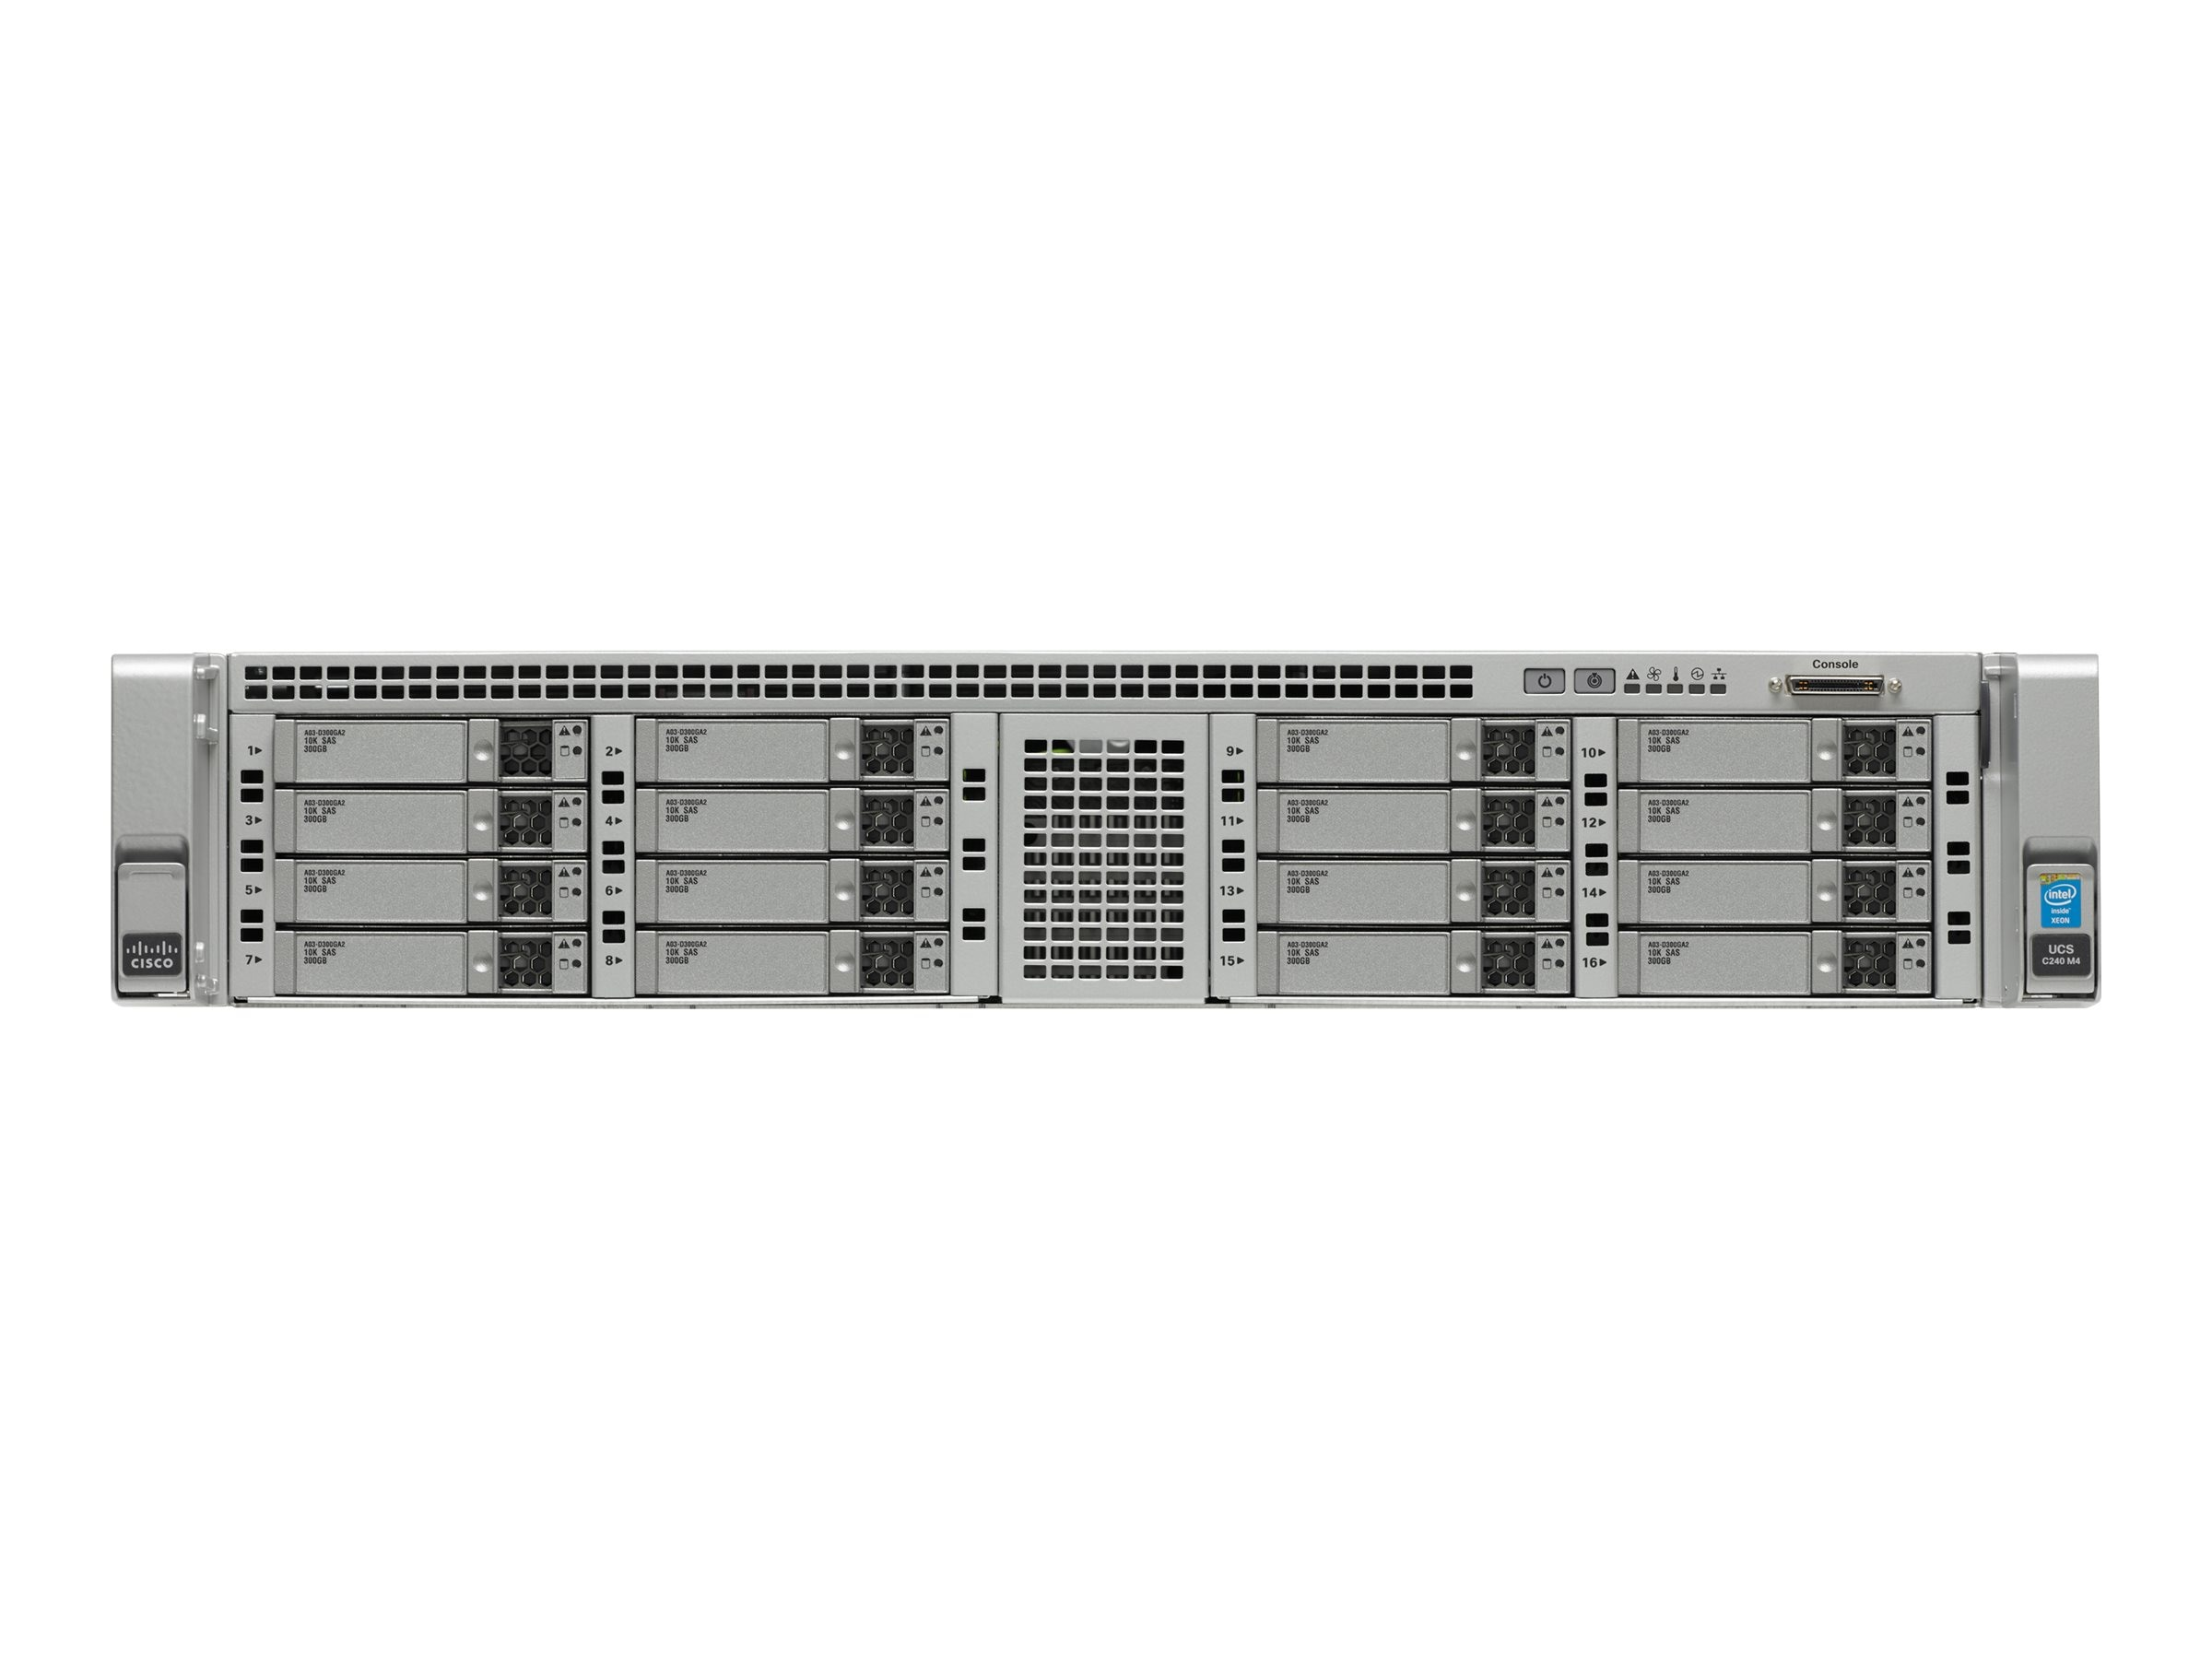 Cisco BE7M-M4-K9 Image 2